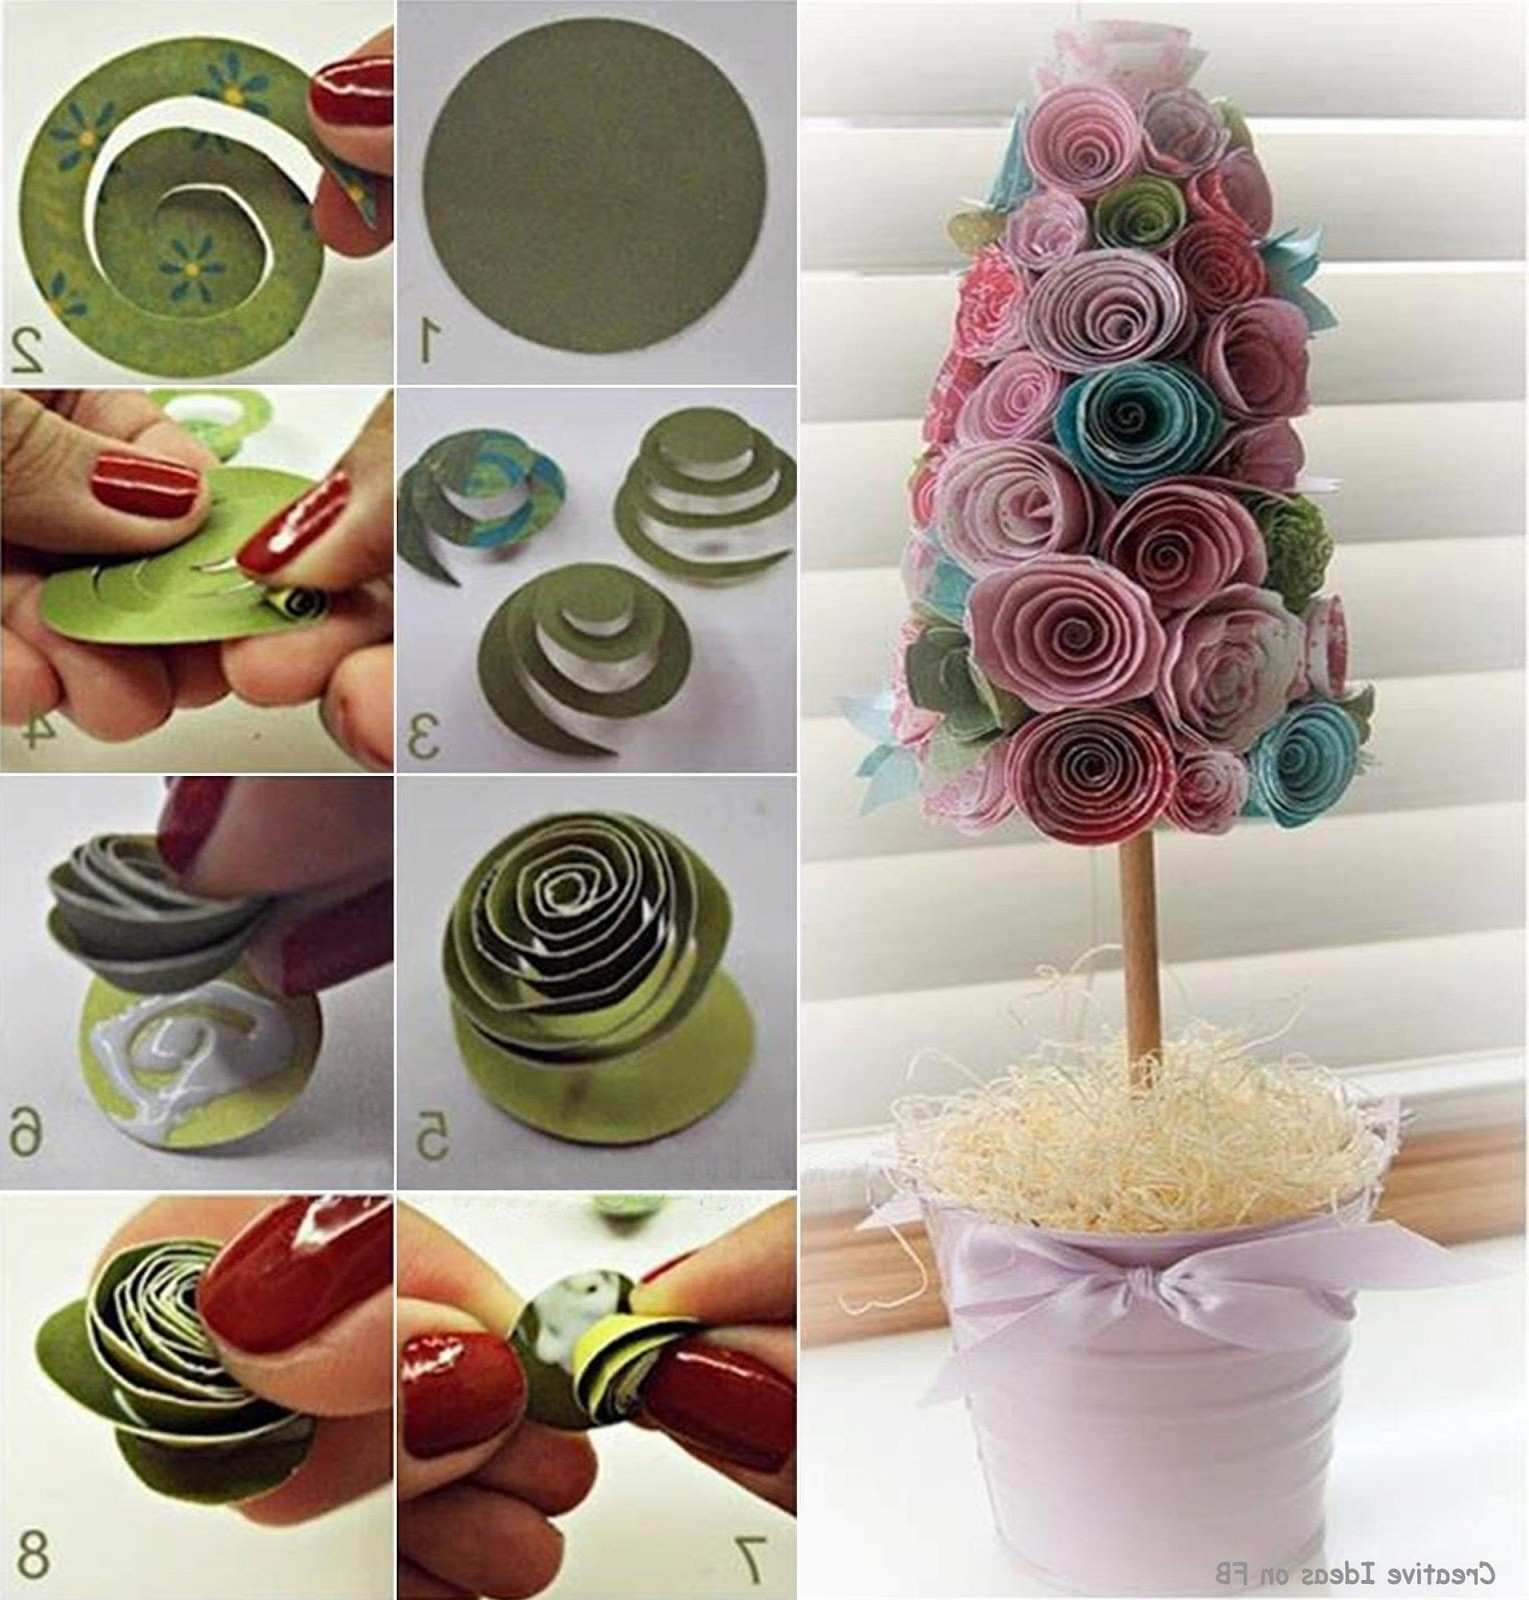 best Art And Craft Ideas For Adults At Home image collection